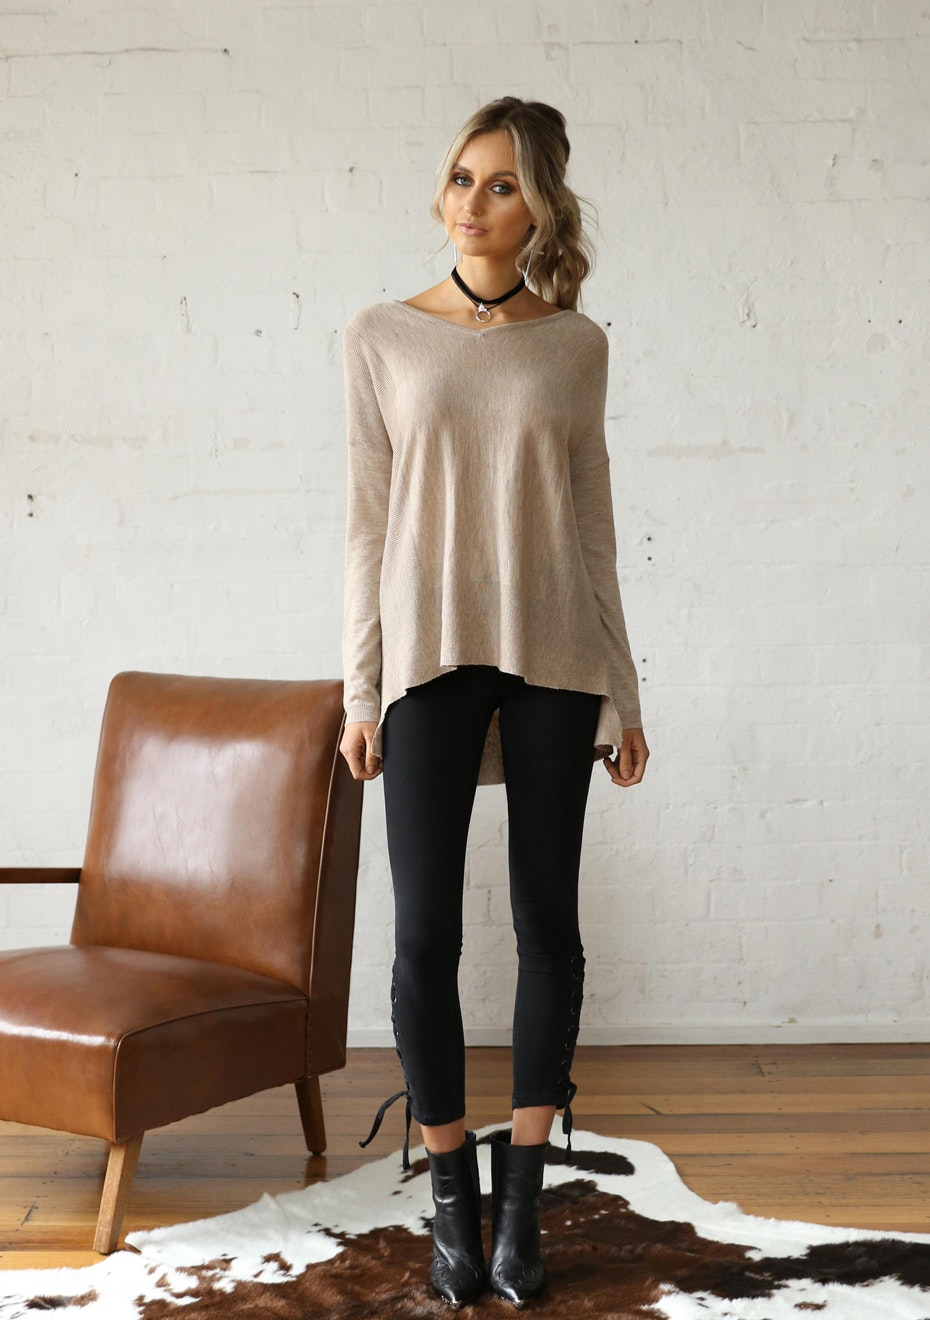 Madison - REVOLVER KNIT - BEIGE